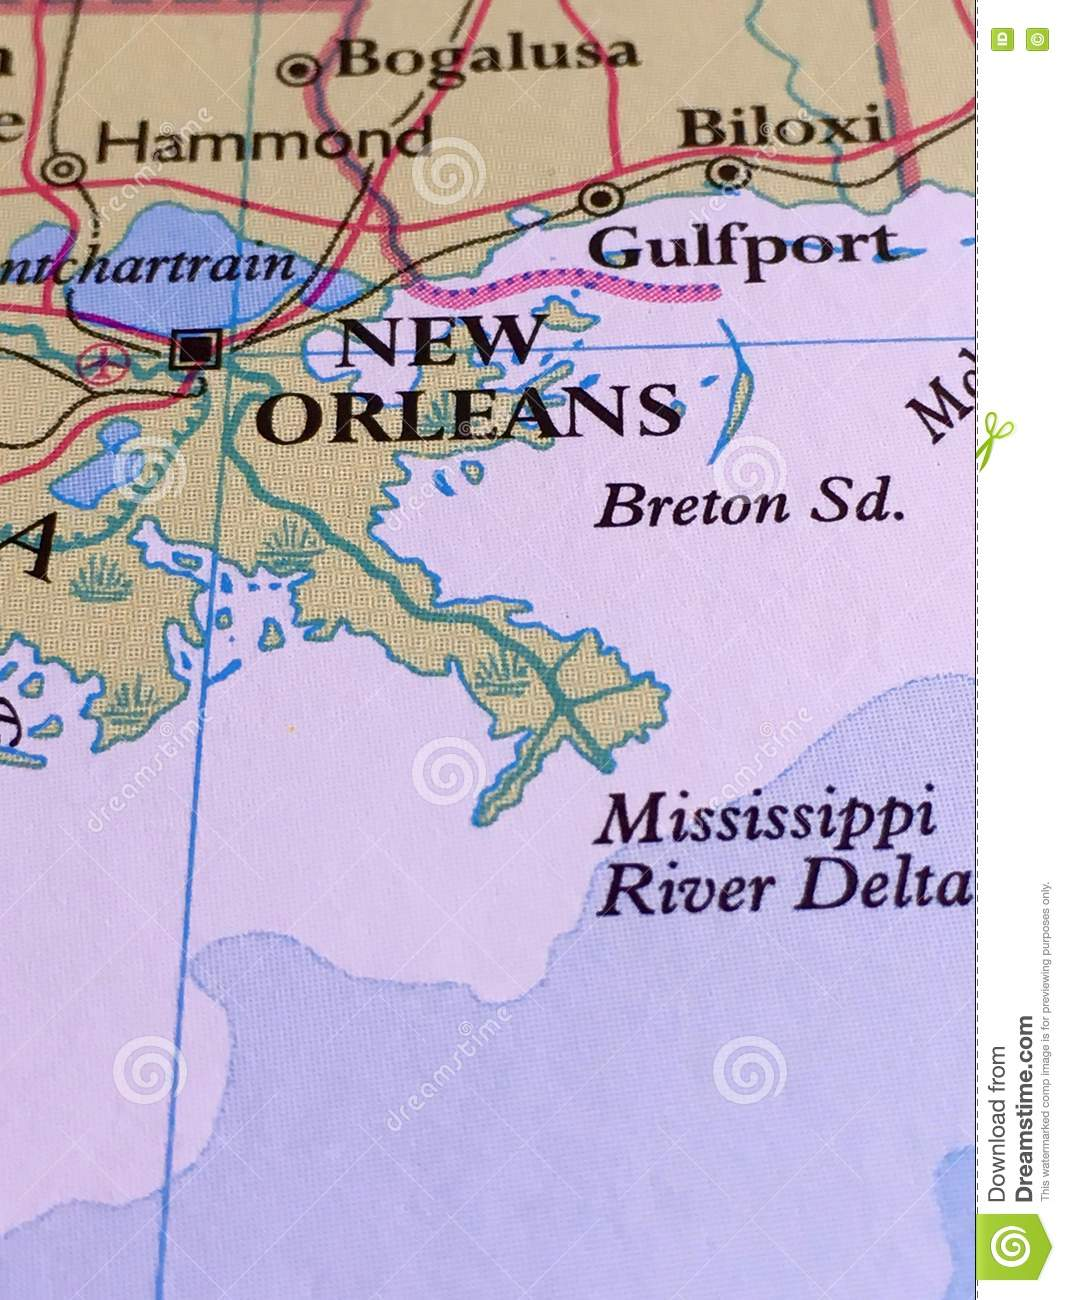 Louisiana New Orleans Map.New Orleans Map Stock Photo Image Of Biloxi Delta Vertical 80988342